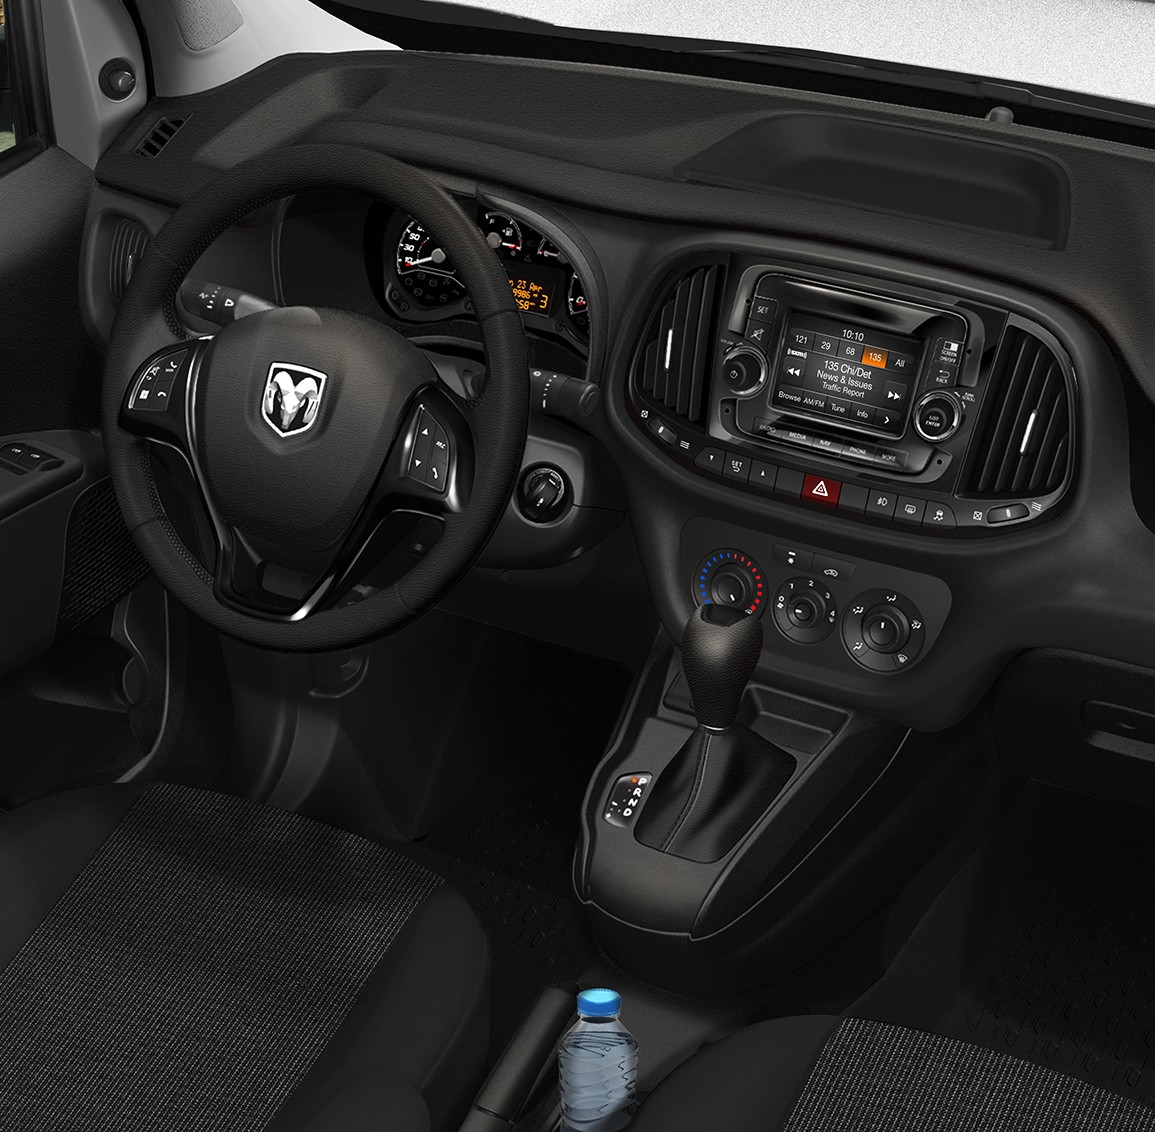 2015 Ram ProMaster City SLT interior